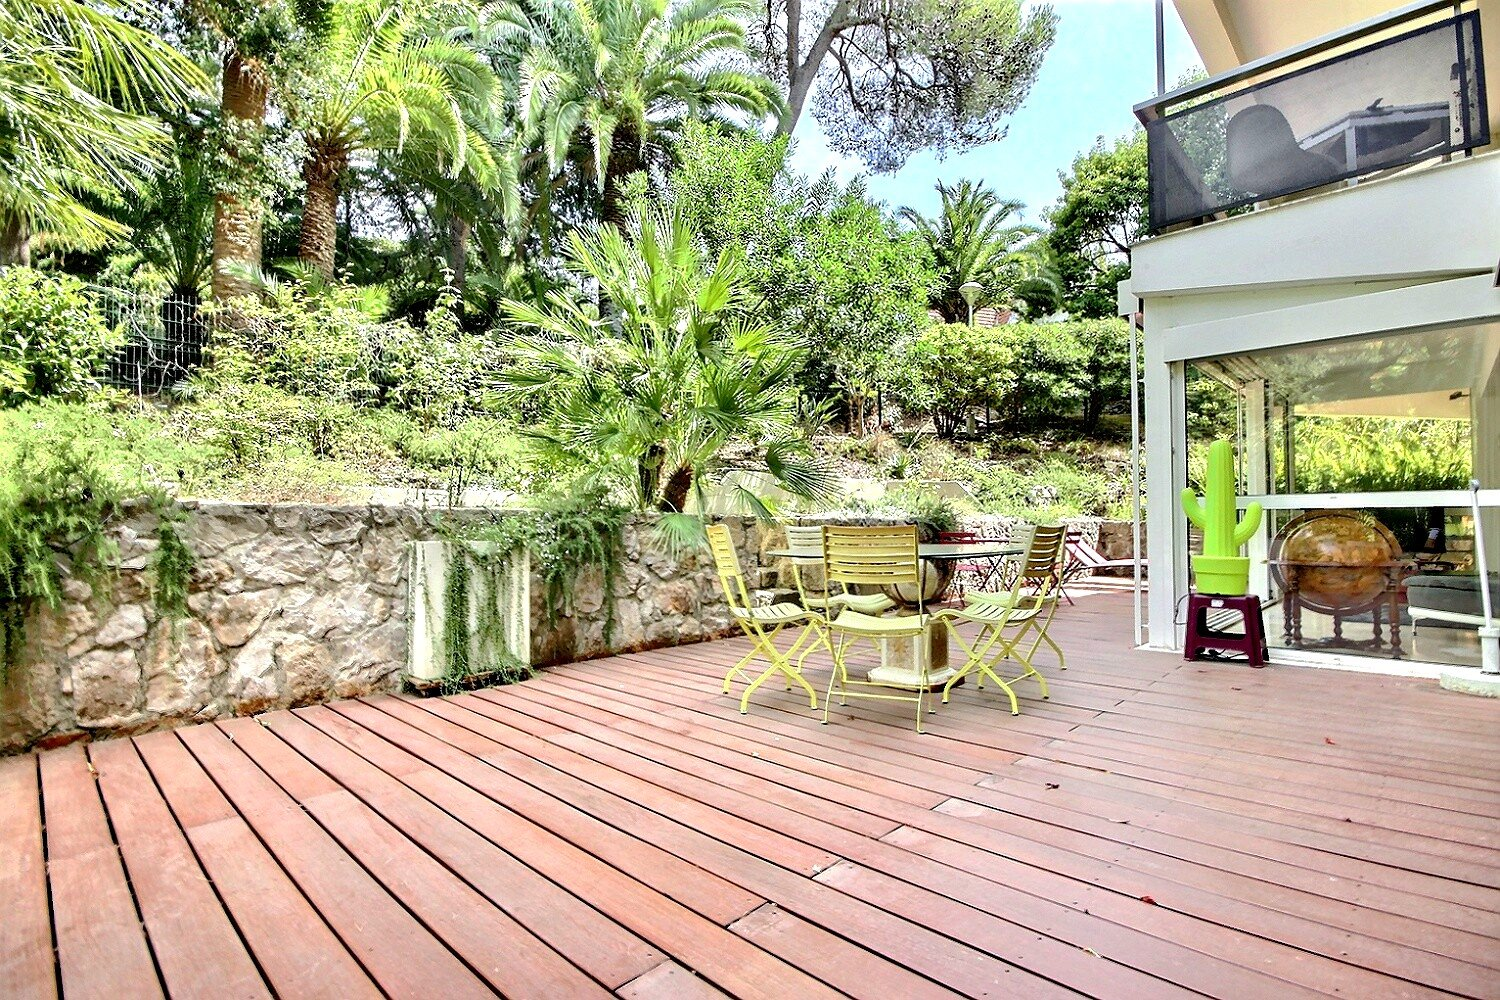 Property for sale in Basse Californie